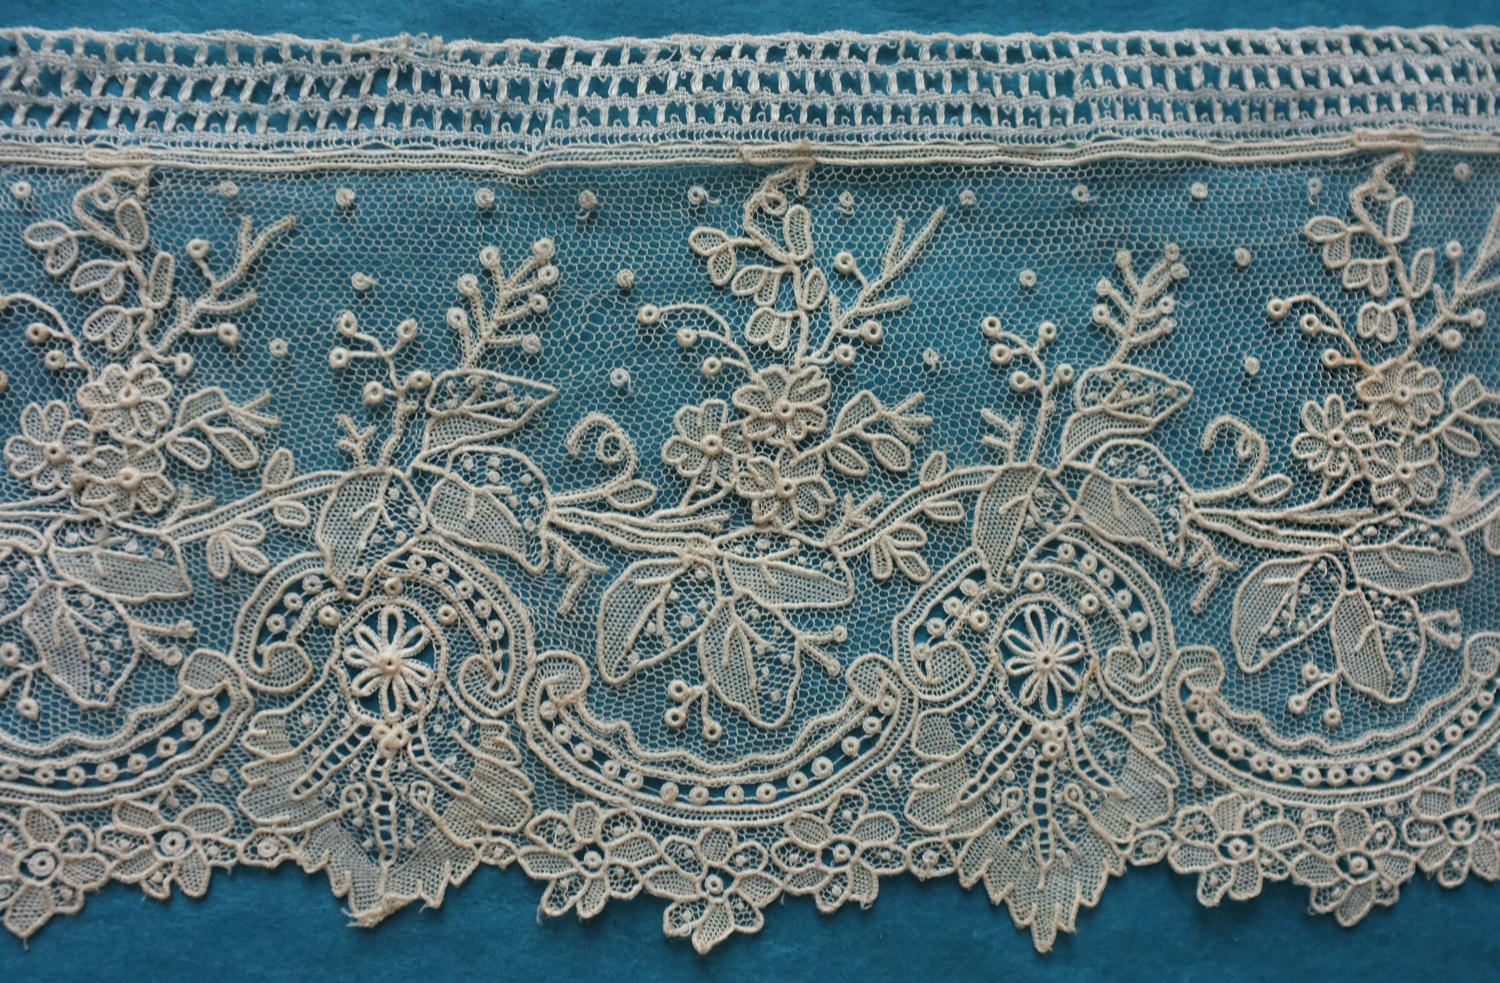 Brussels Point de Gaze Lace Leaf Garland Border